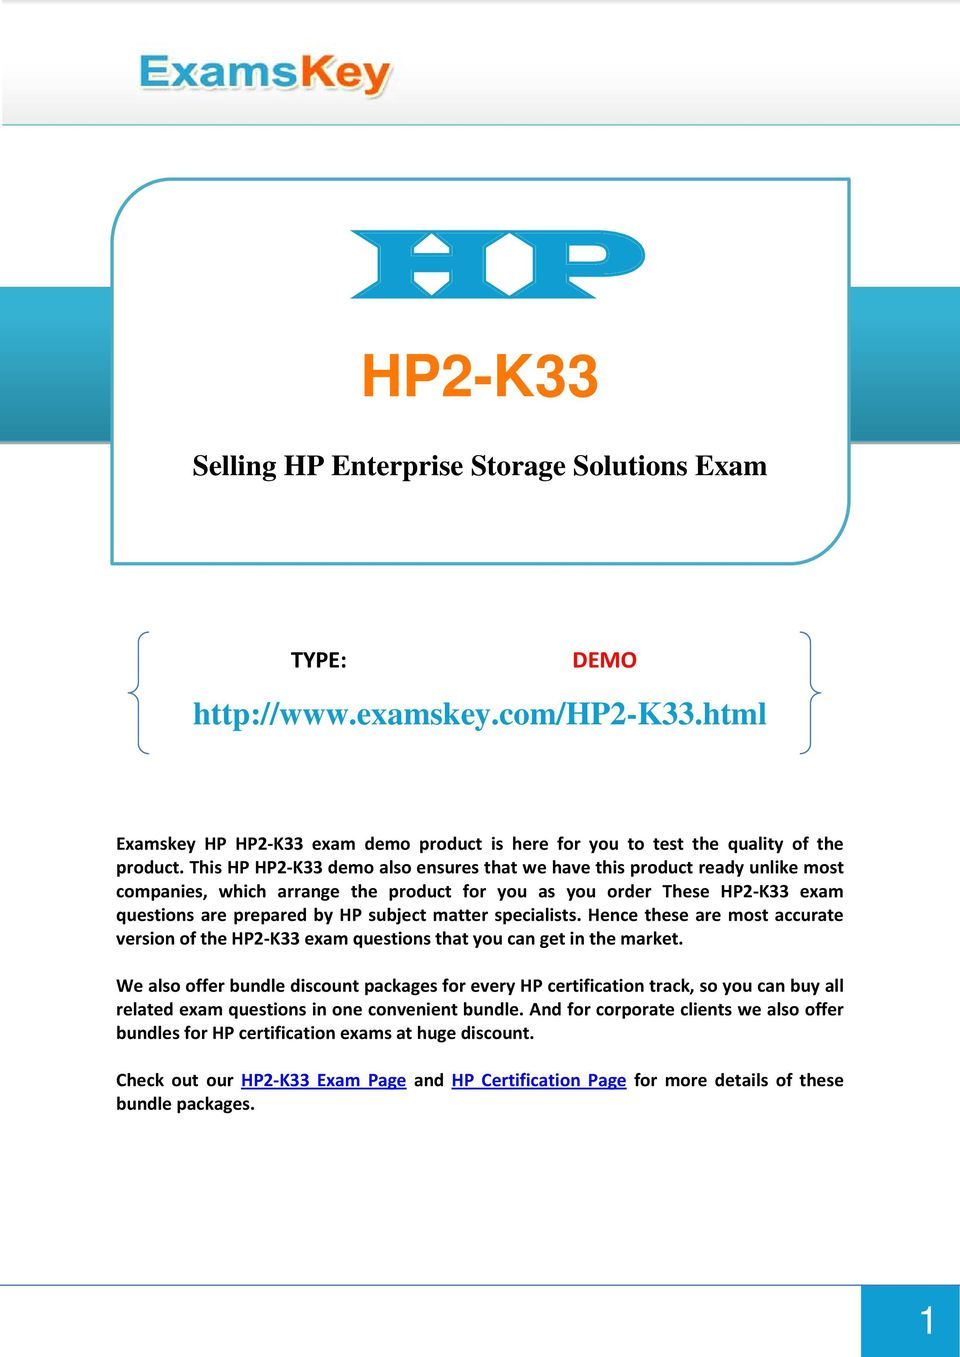 specialists. Hence these are most accurate version of the HP2-K33 exam questions that you can get in the market.